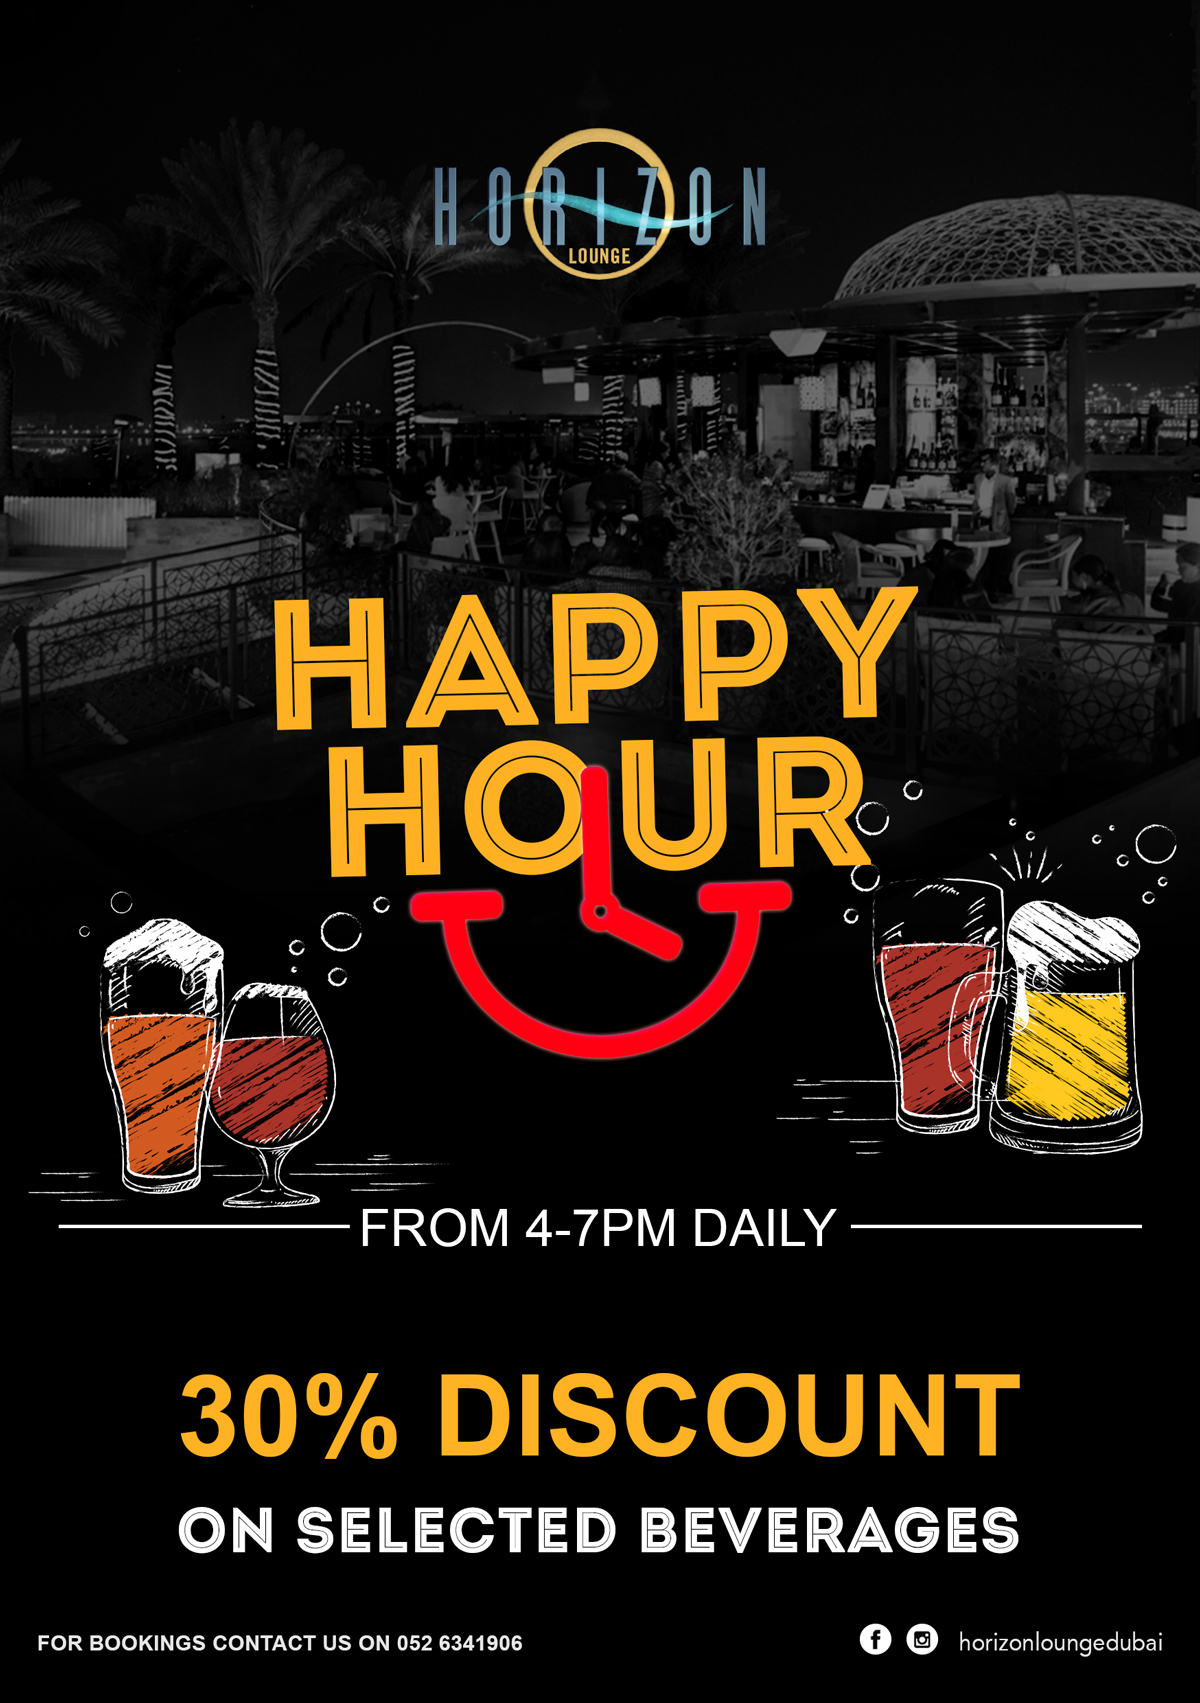 Happy Hour at Horizon Lounge!